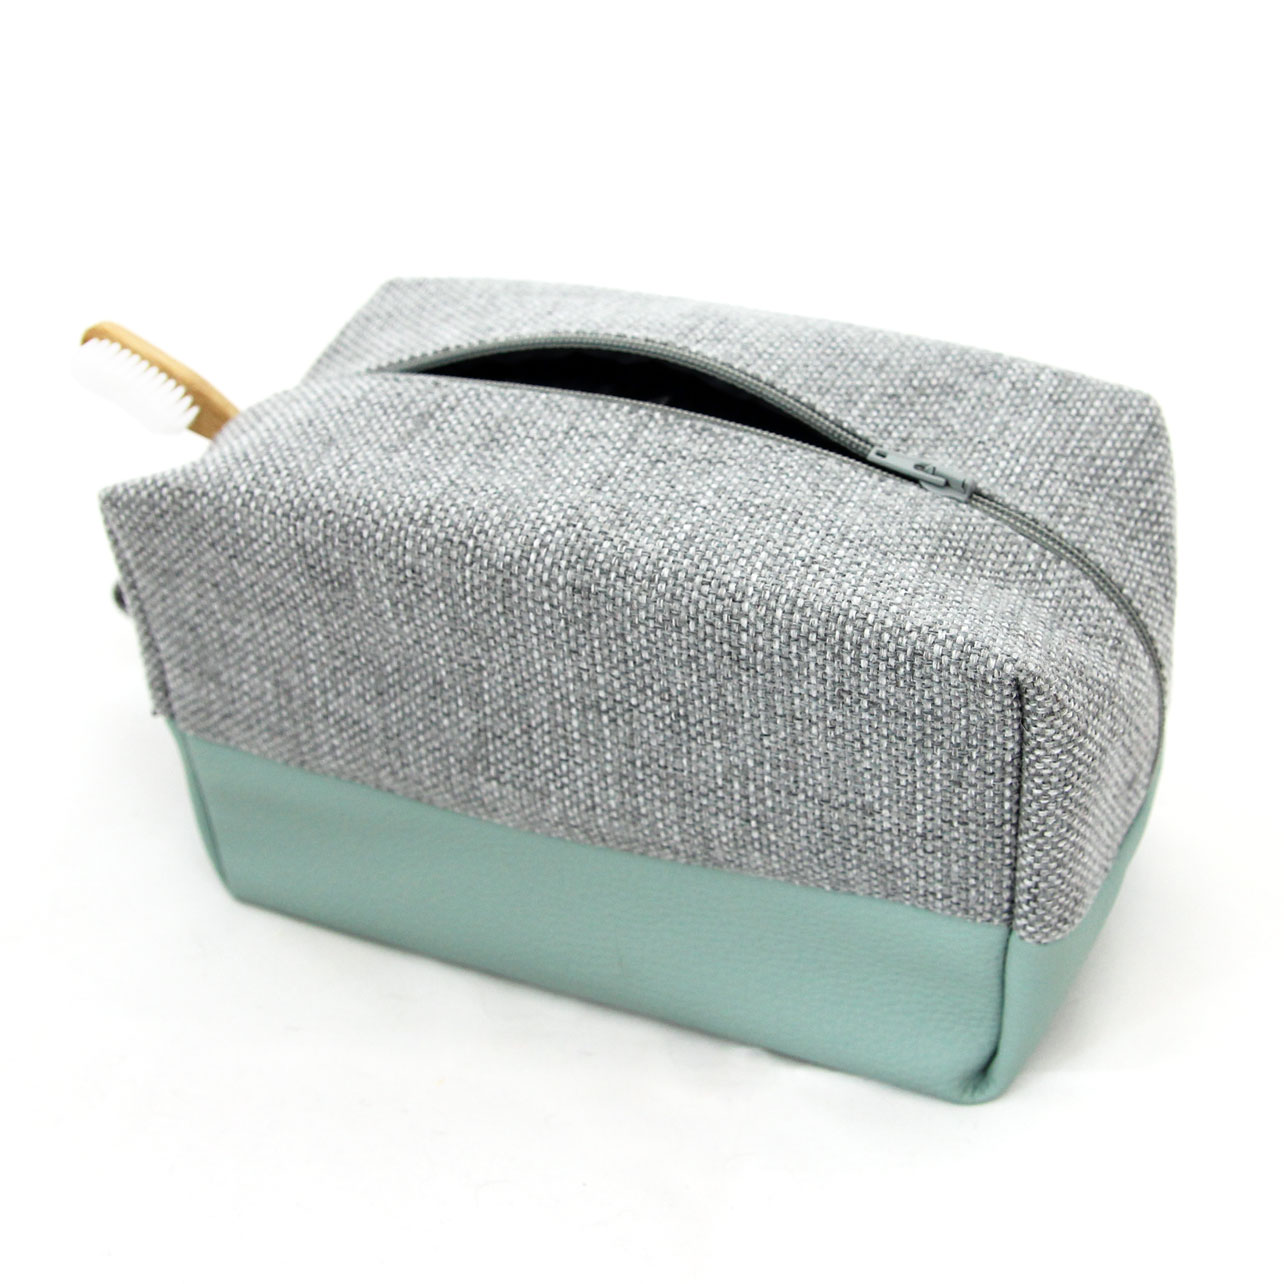 Toiletry bag for women mint angle